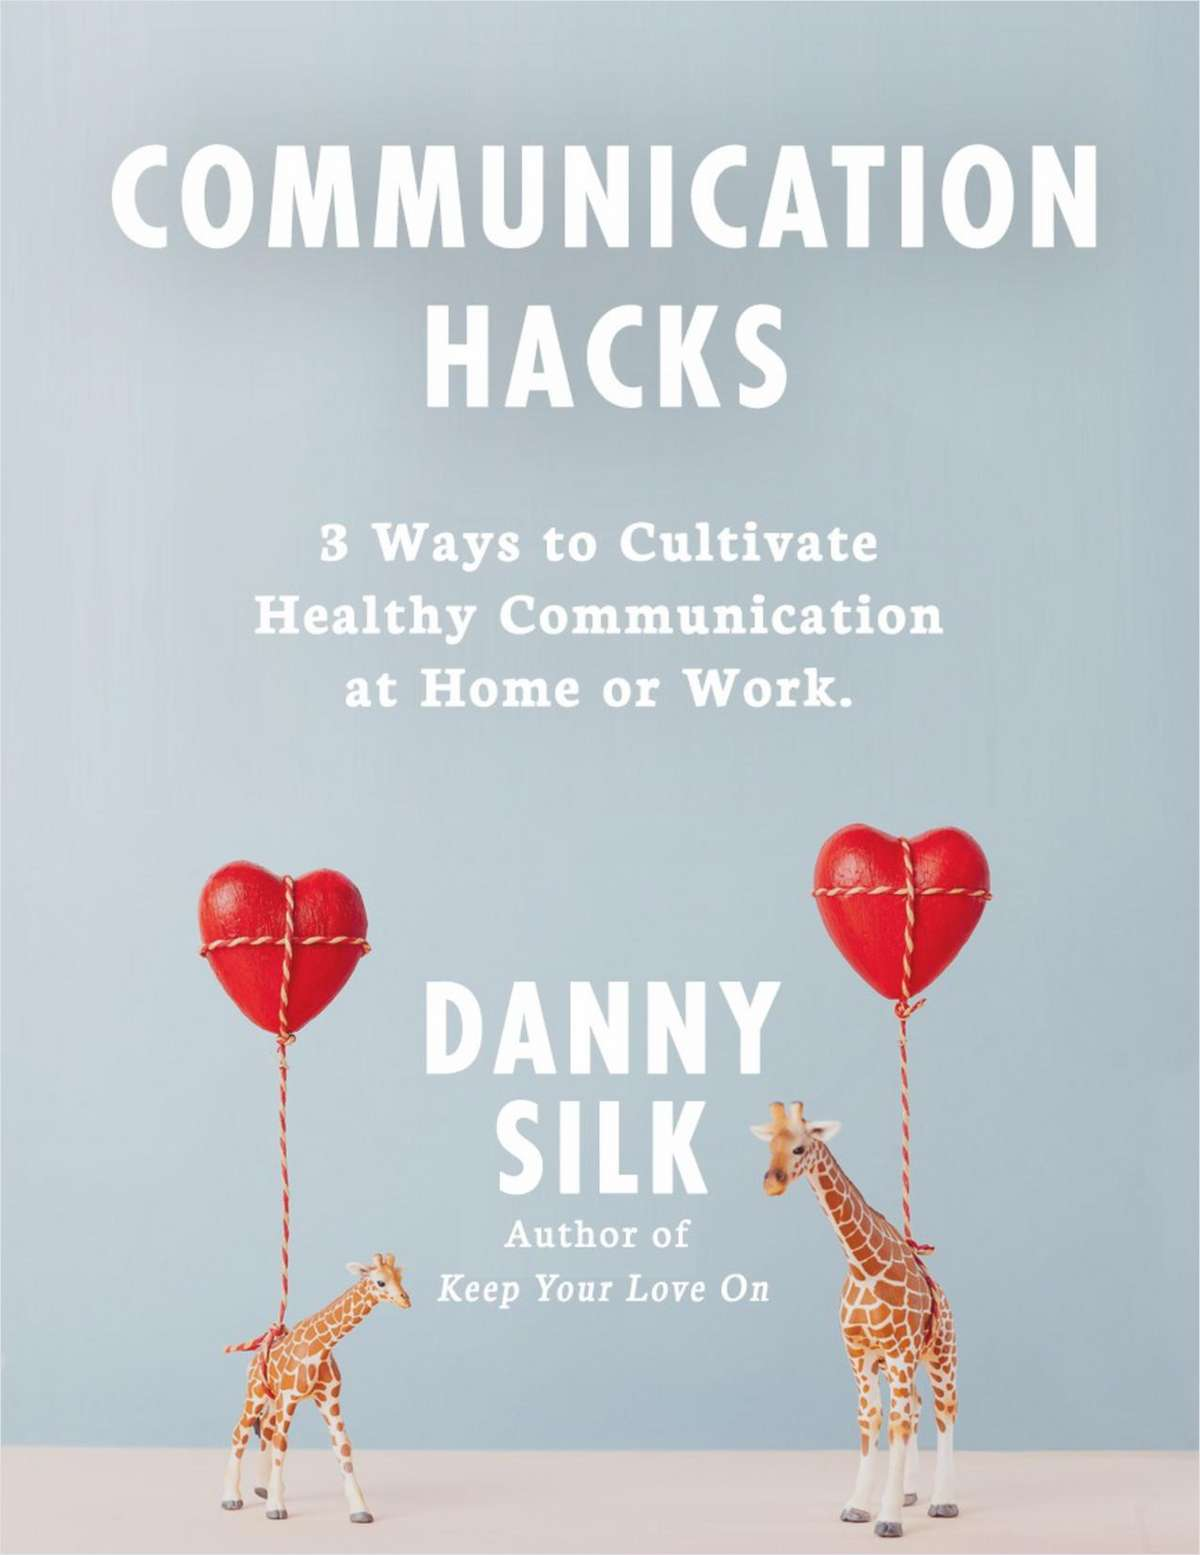 Communication Hacks: 3 Ways to Cultivate Healthy Communication at Home or Work